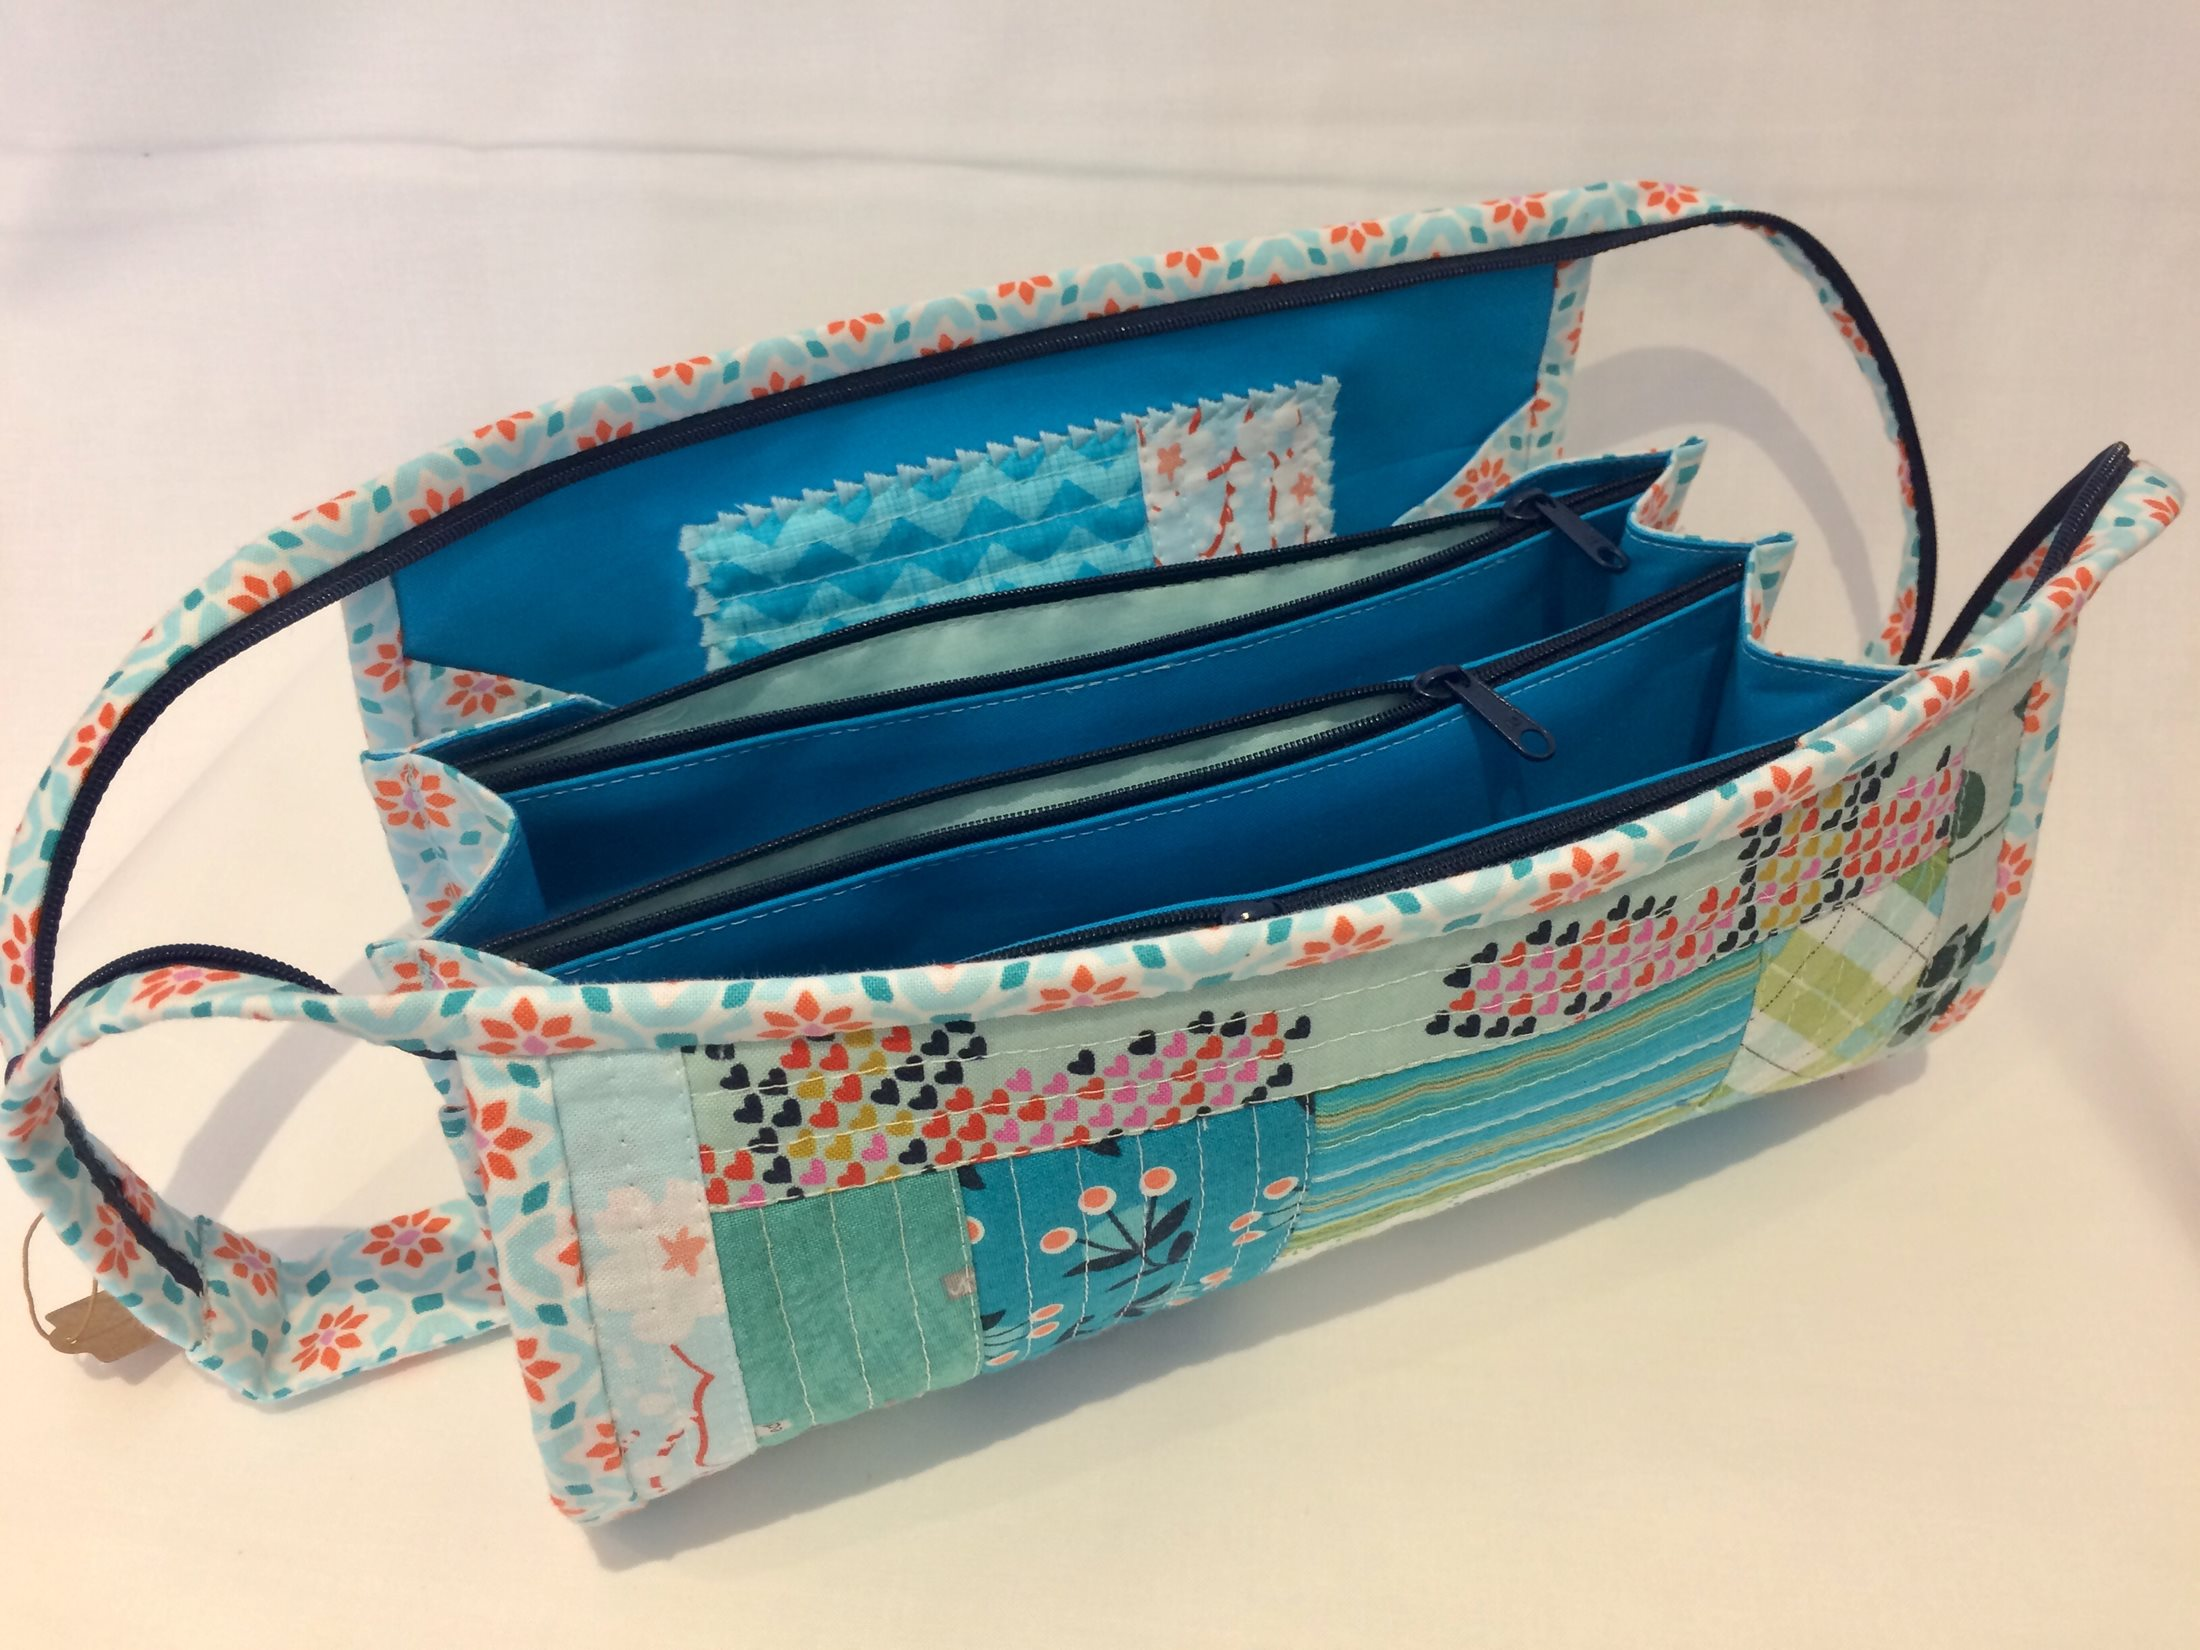 Bild: Patchworkkurs – Sew Together Bag  2/3